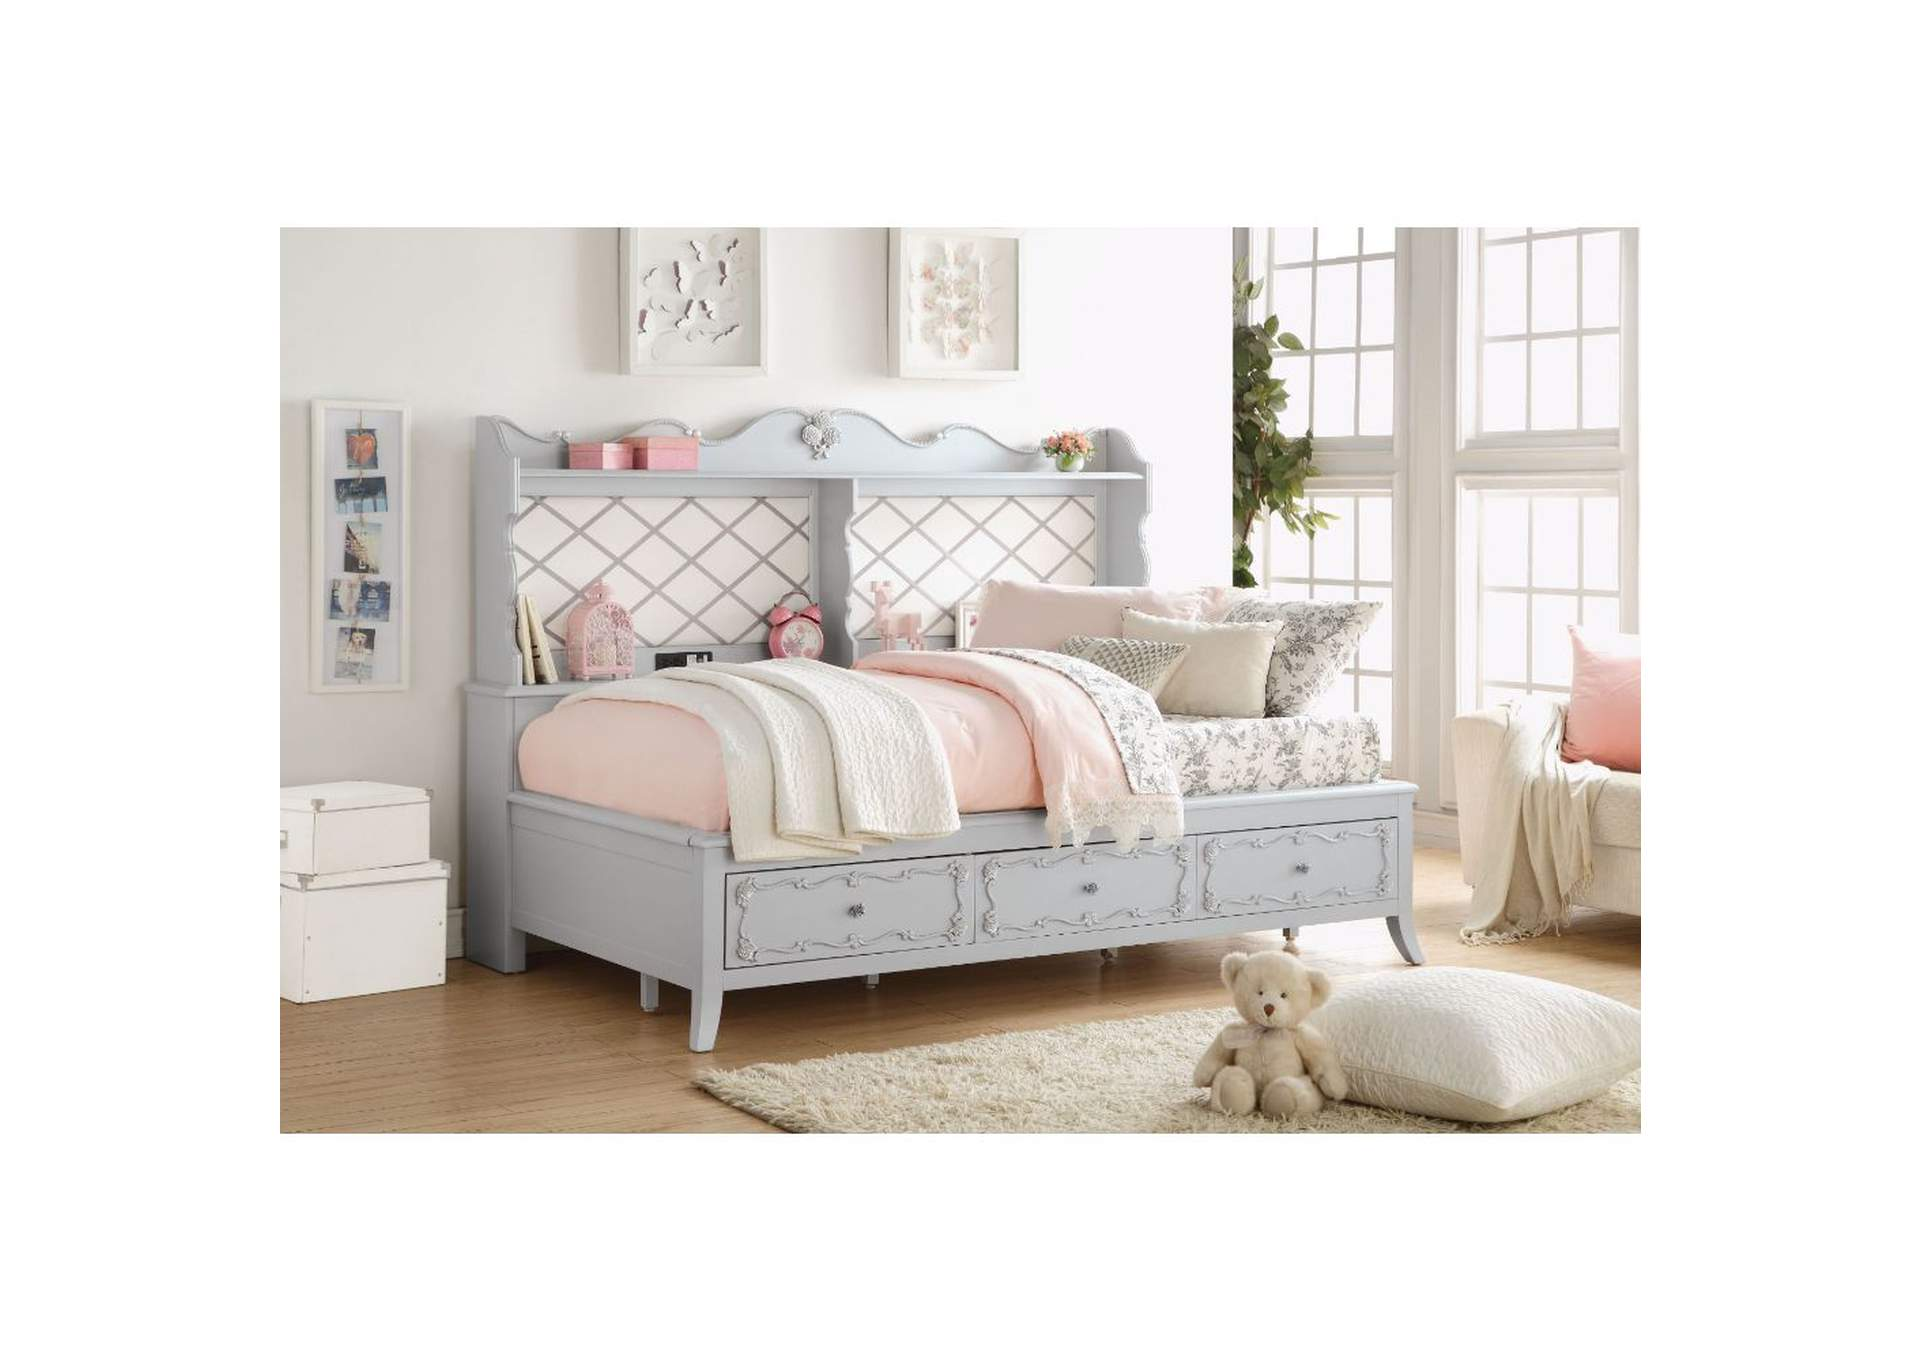 Edalene Gray Daybed,Acme